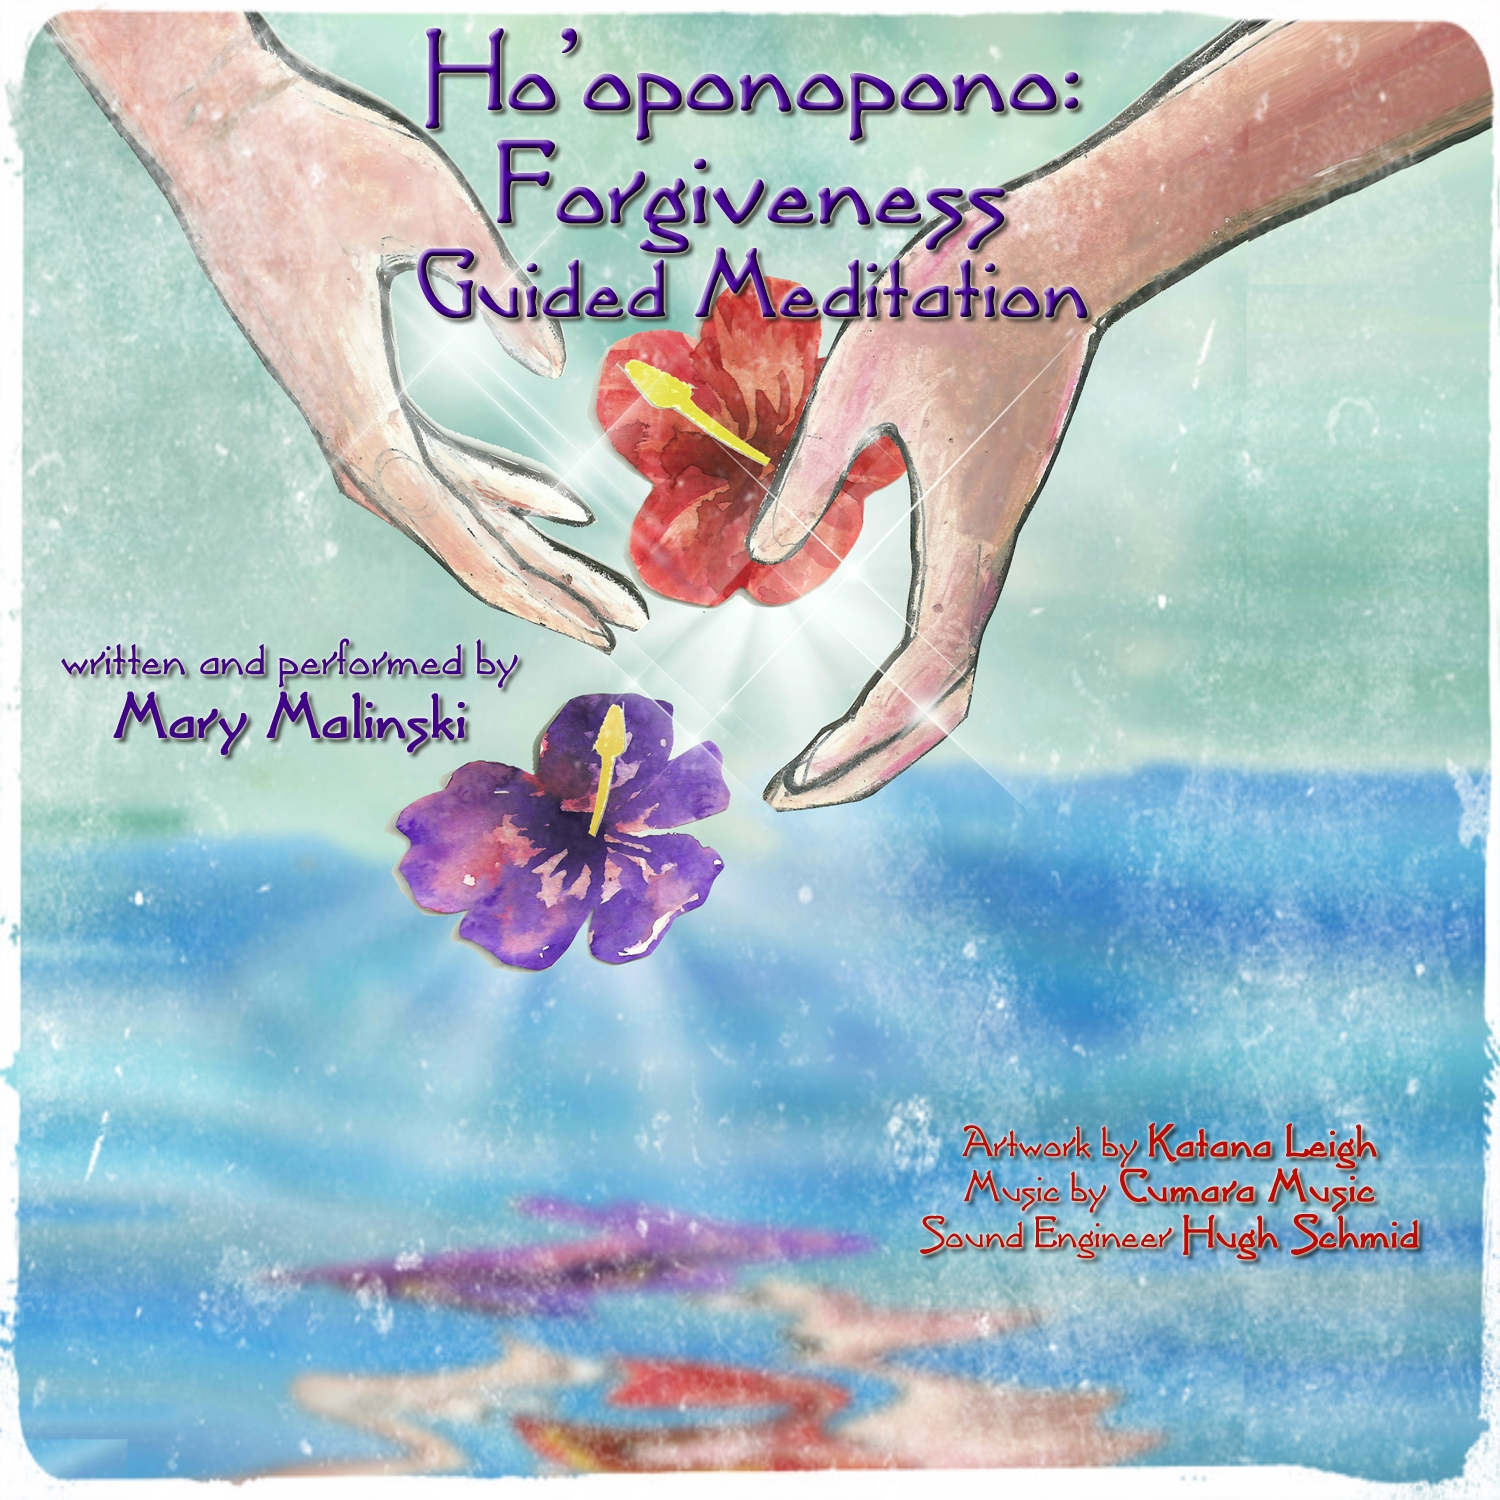 ho'oponopono forgiveness guided meditation